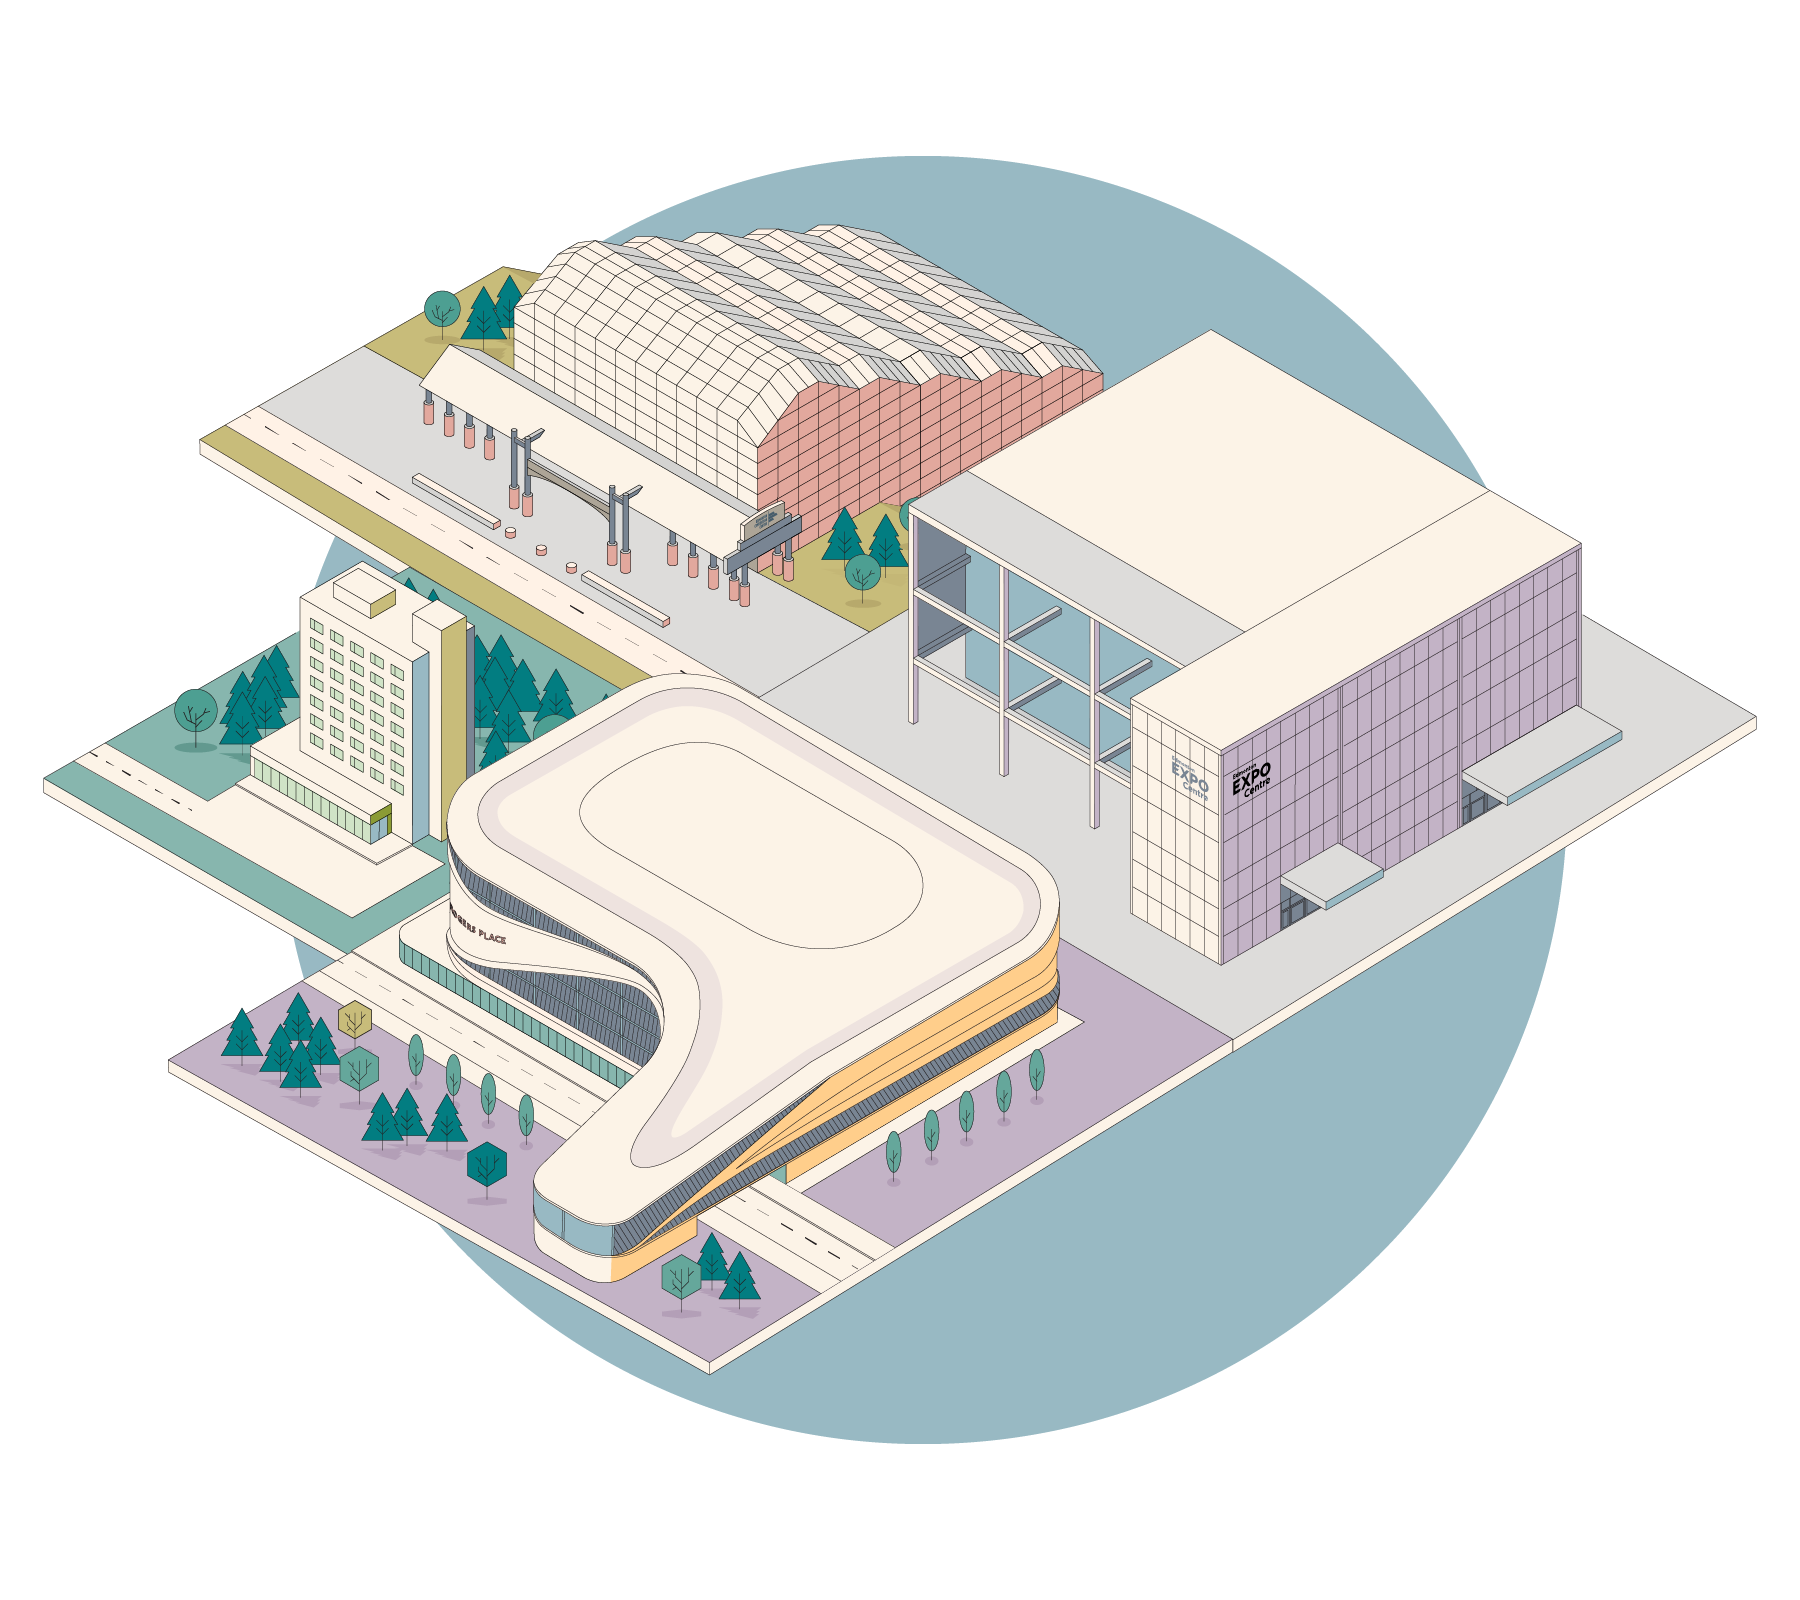 Edmonton venues isometric illustration with rogers place, expo centre and Edmonton convention centre